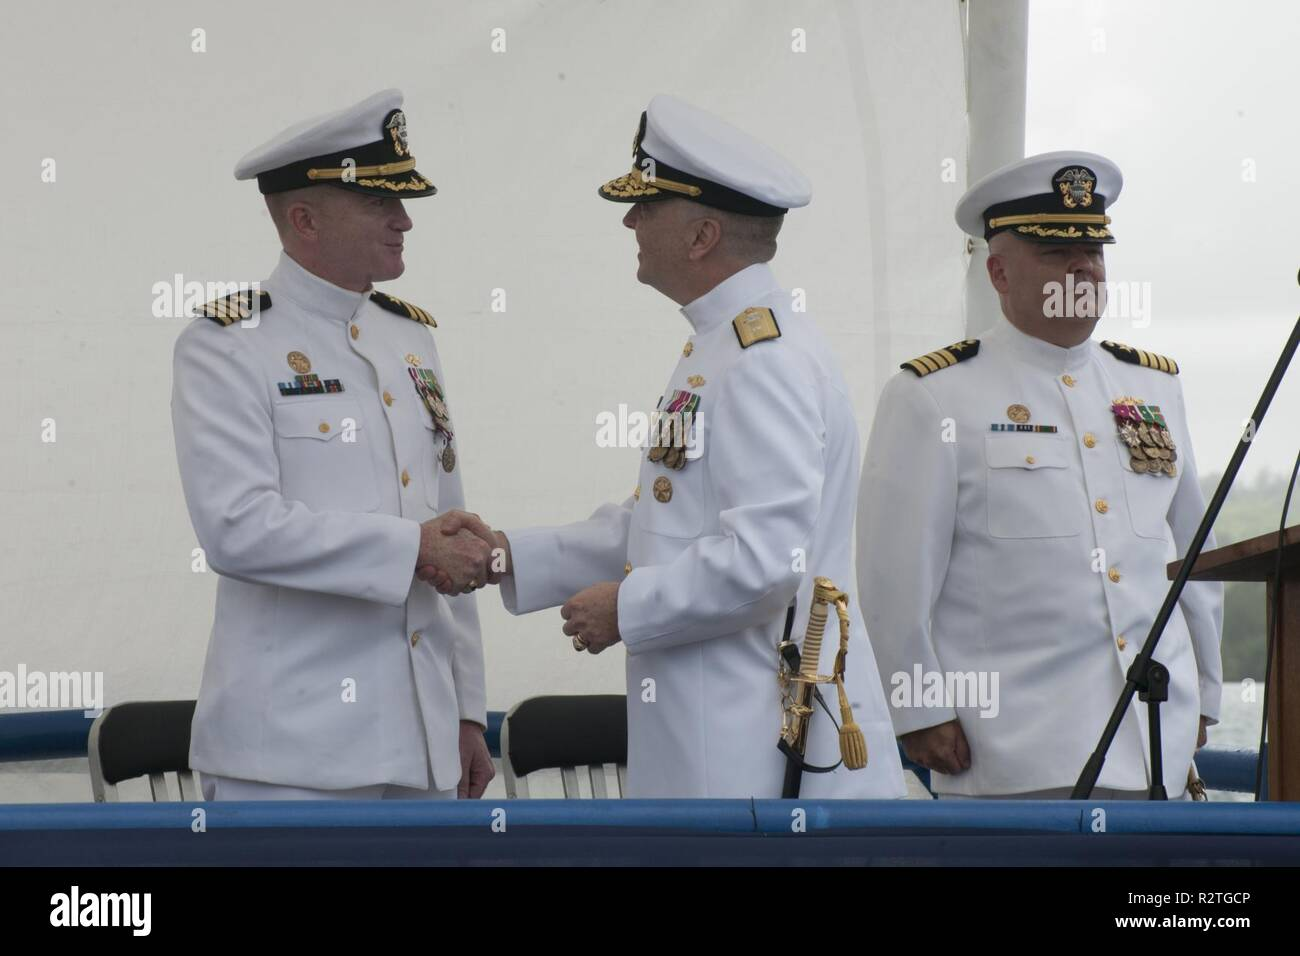 PITI, Guam (Nov. 9, 2018) Rear Adm. James Waters, III, director, Maritime Headquarters, U.S. Pacific Fleet, ceneter, congratulates Cmdr. Thomas O'Donnell, left, on a job well done during a change of command ceremony aboard Los Angeles-class attack submarine USS Oklahoma City (SSN 723), Nov. 9. Oklahoma City is one of four Guam-homeported submarines assigned to SUBRON 15. - Stock Image